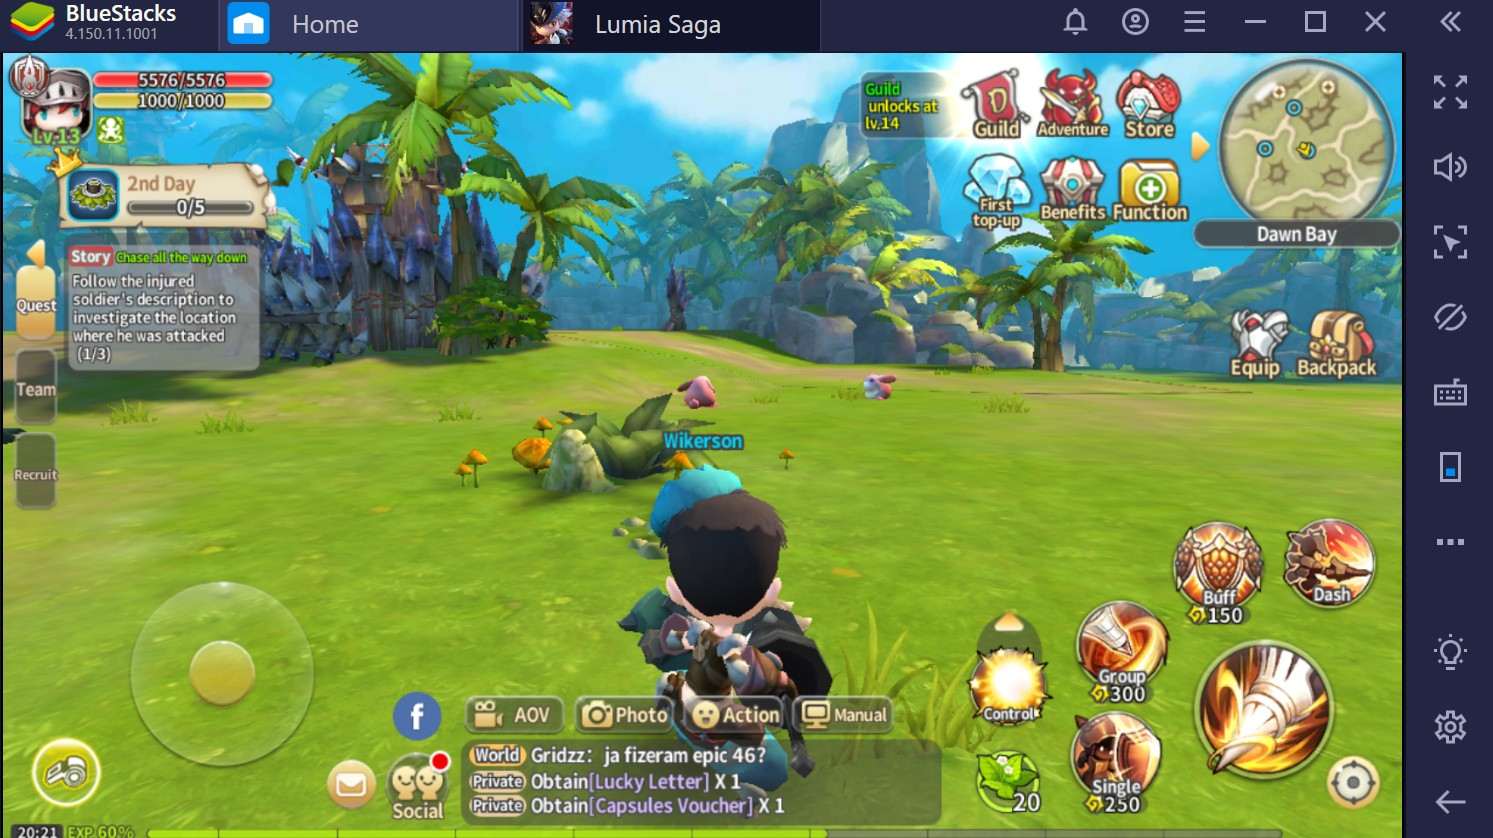 Como jogar Lumia Saga no PC com o BlueStacks